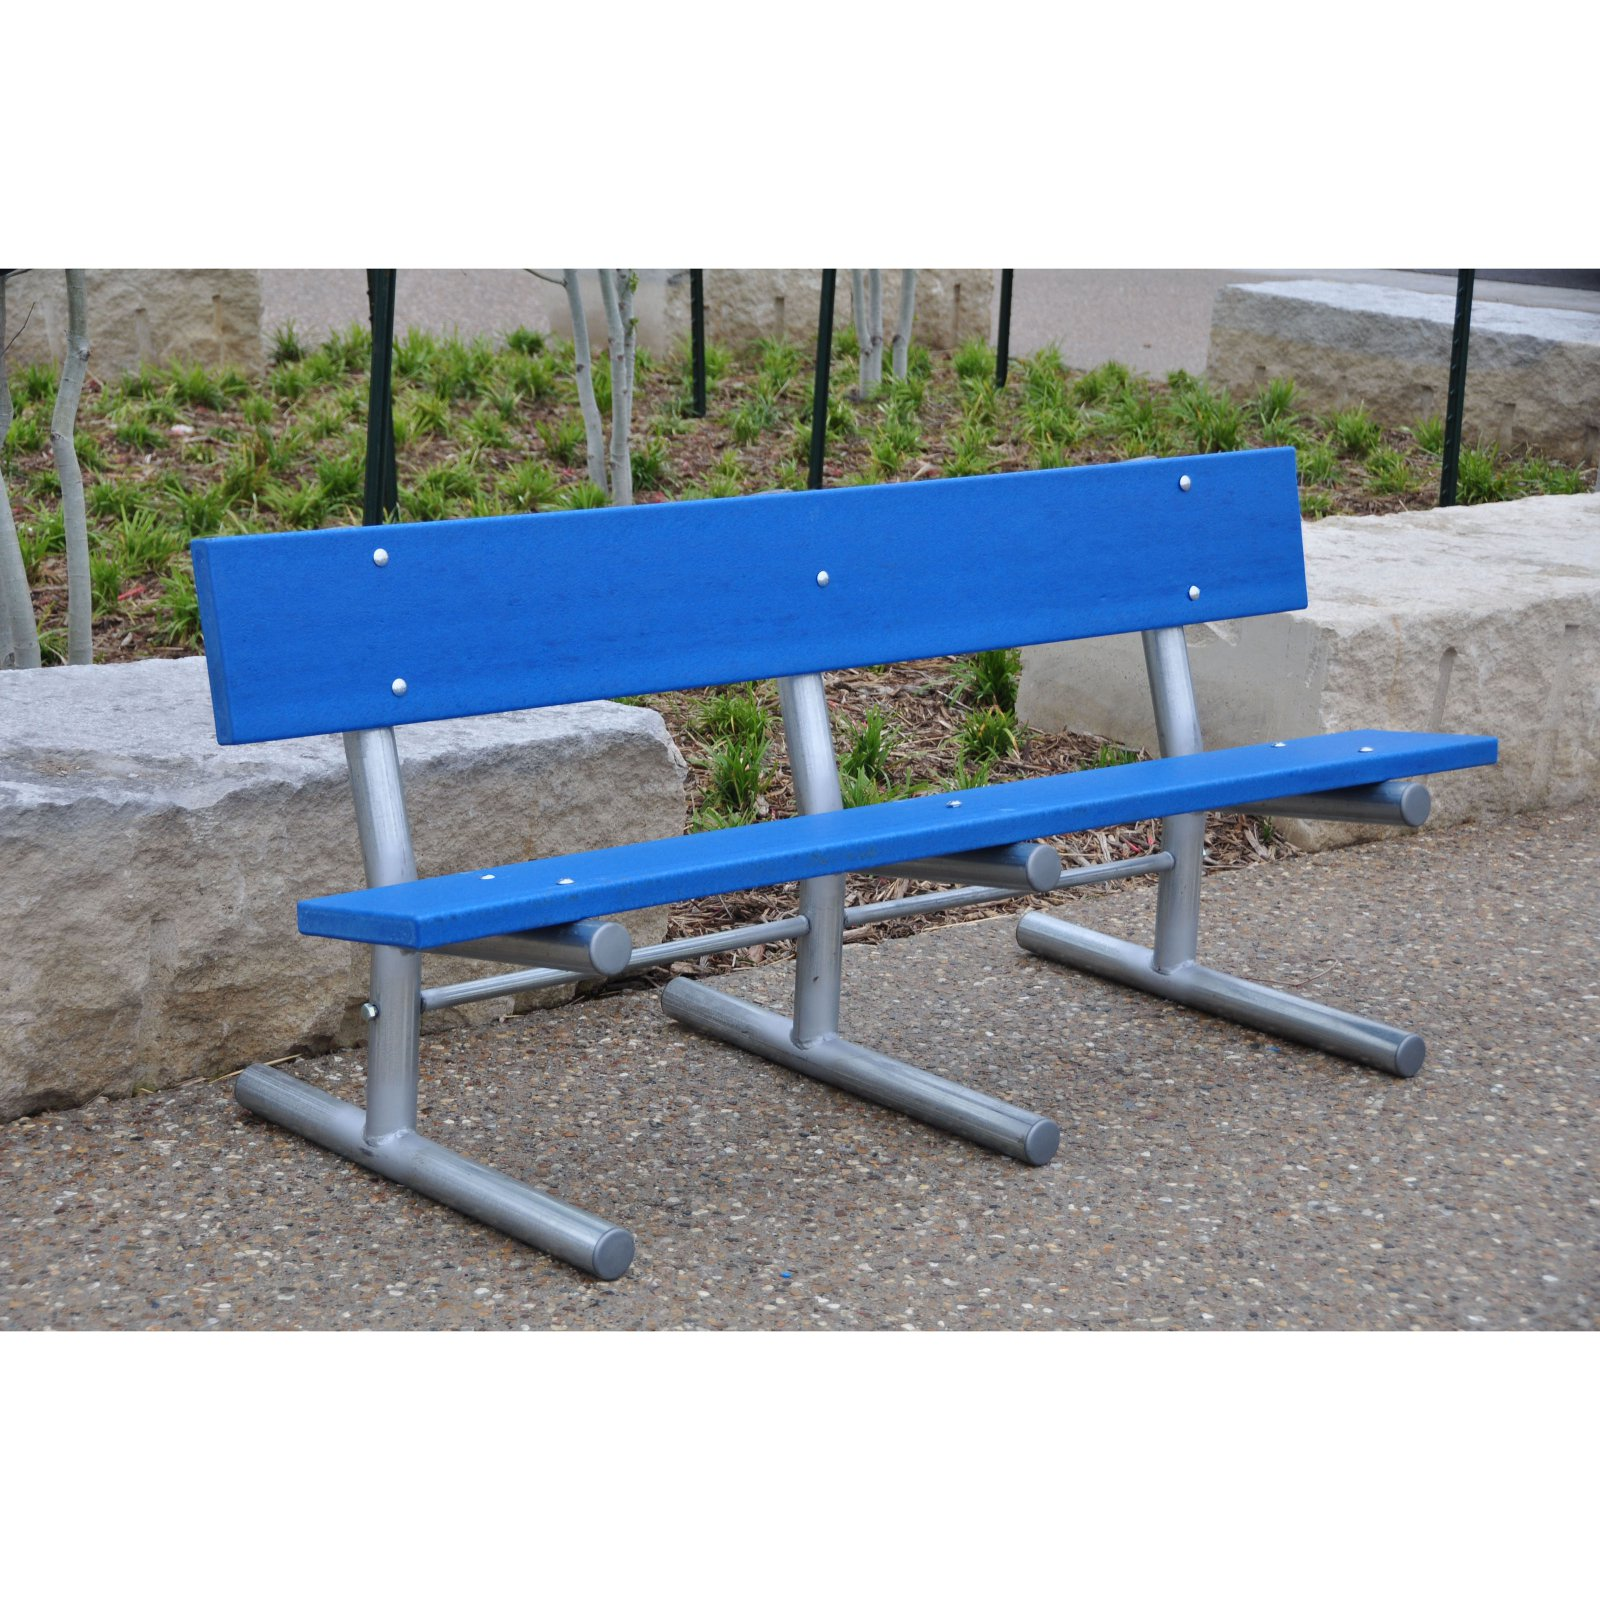 Jayhawk Plastics Frog Furnishings 6 ft. Recycled Plastic Madison Park Bench with Steel Frame